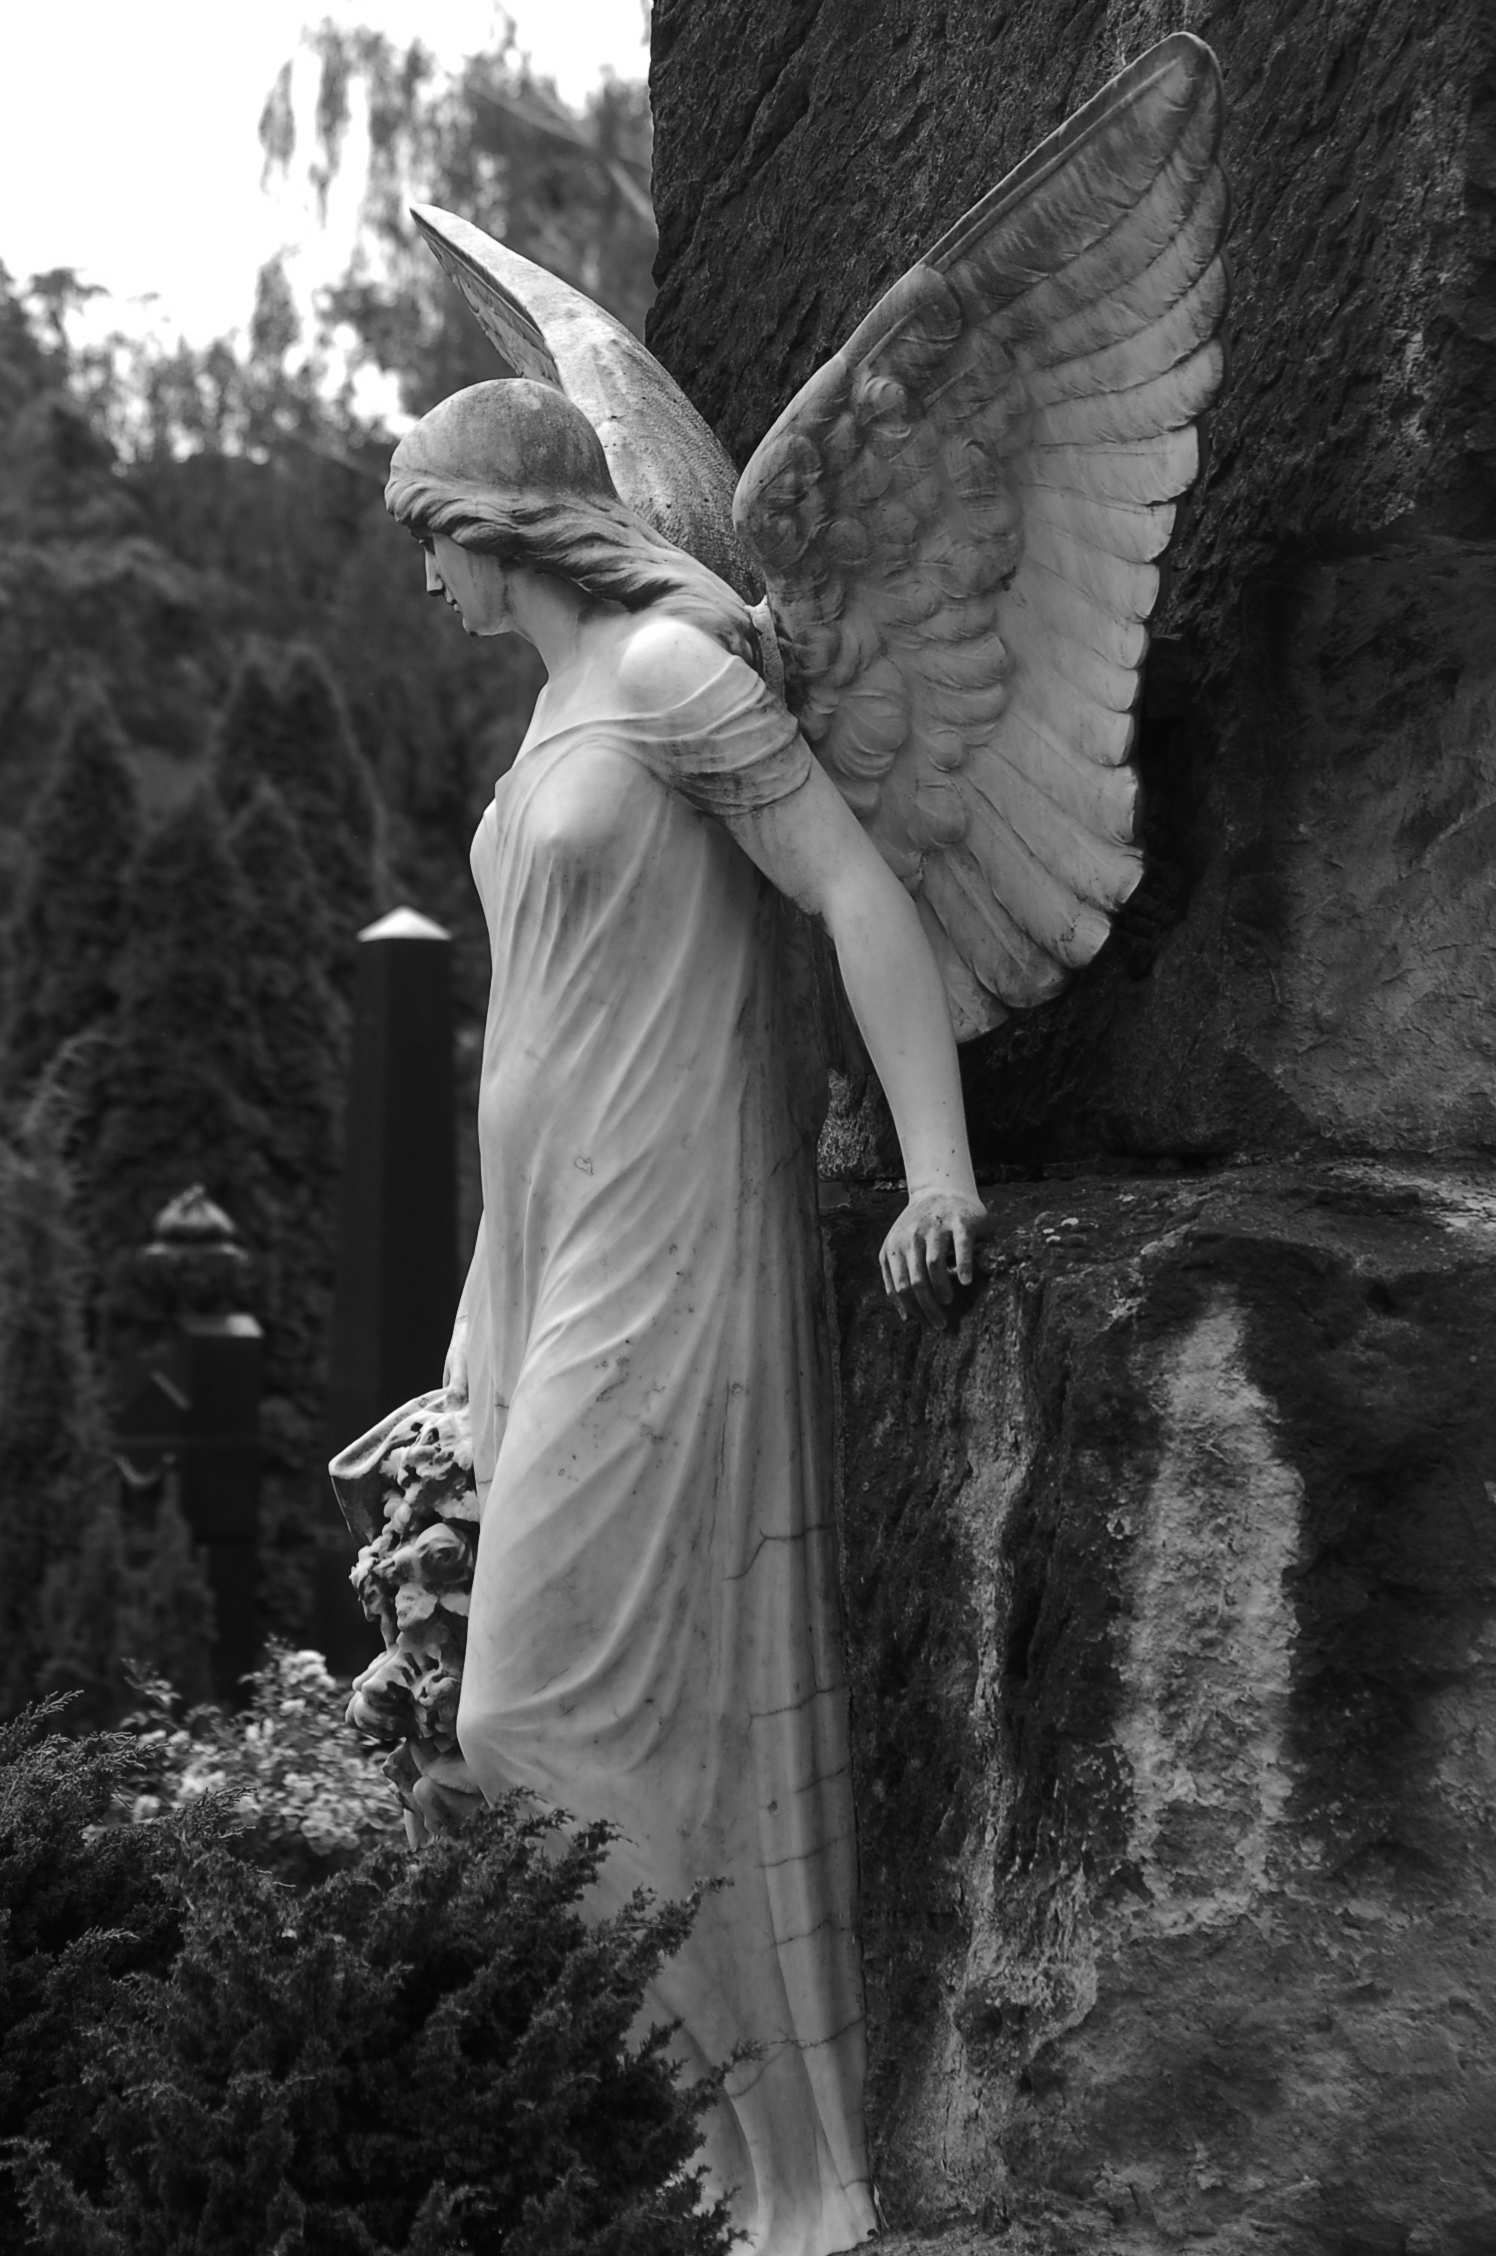 Pin by Laurel on Random Angel sculpture, Cemetery angels